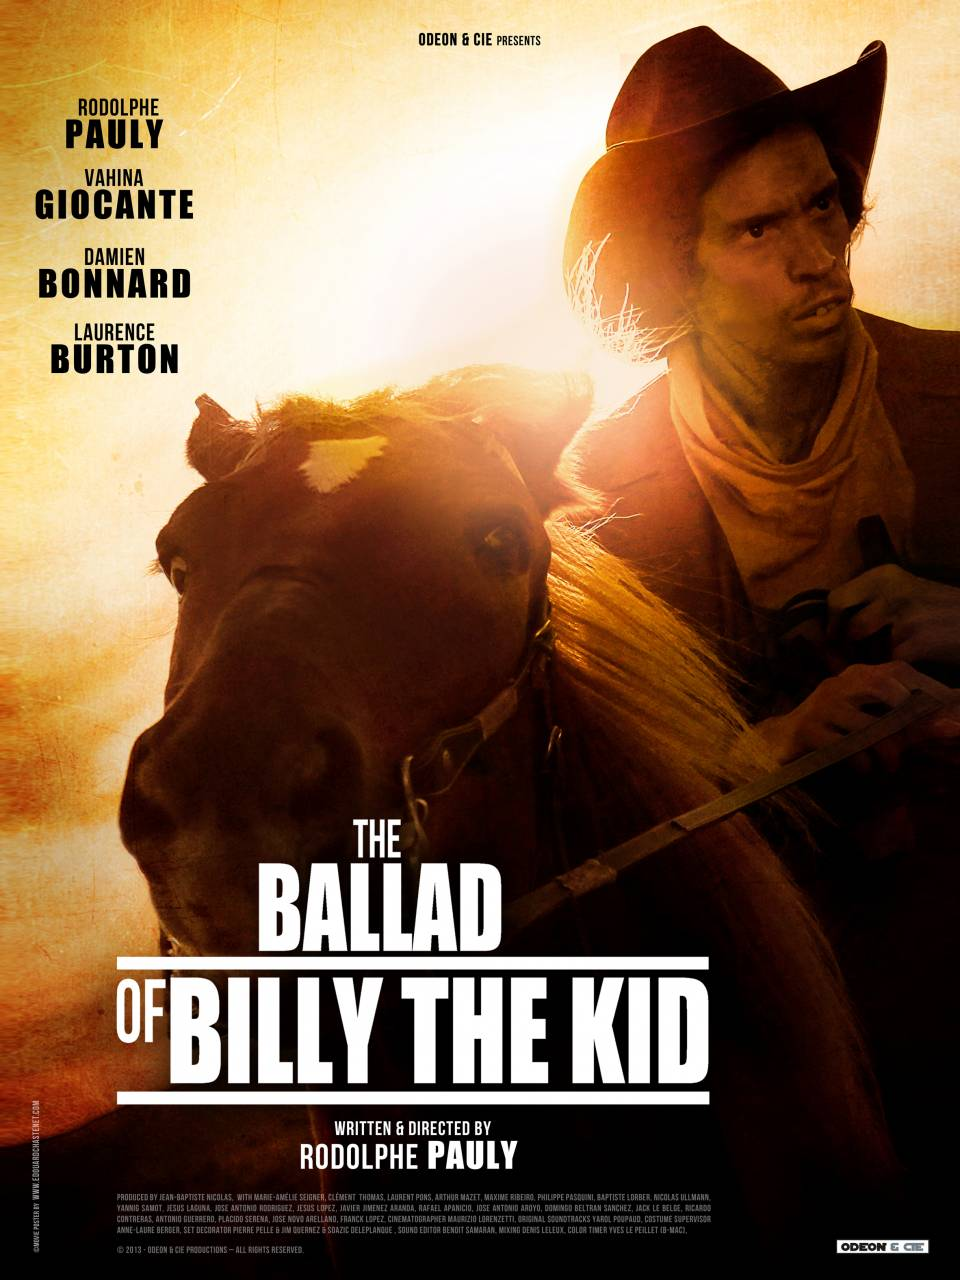 The Ballad of Billy the Kid Rodolphe Pauly